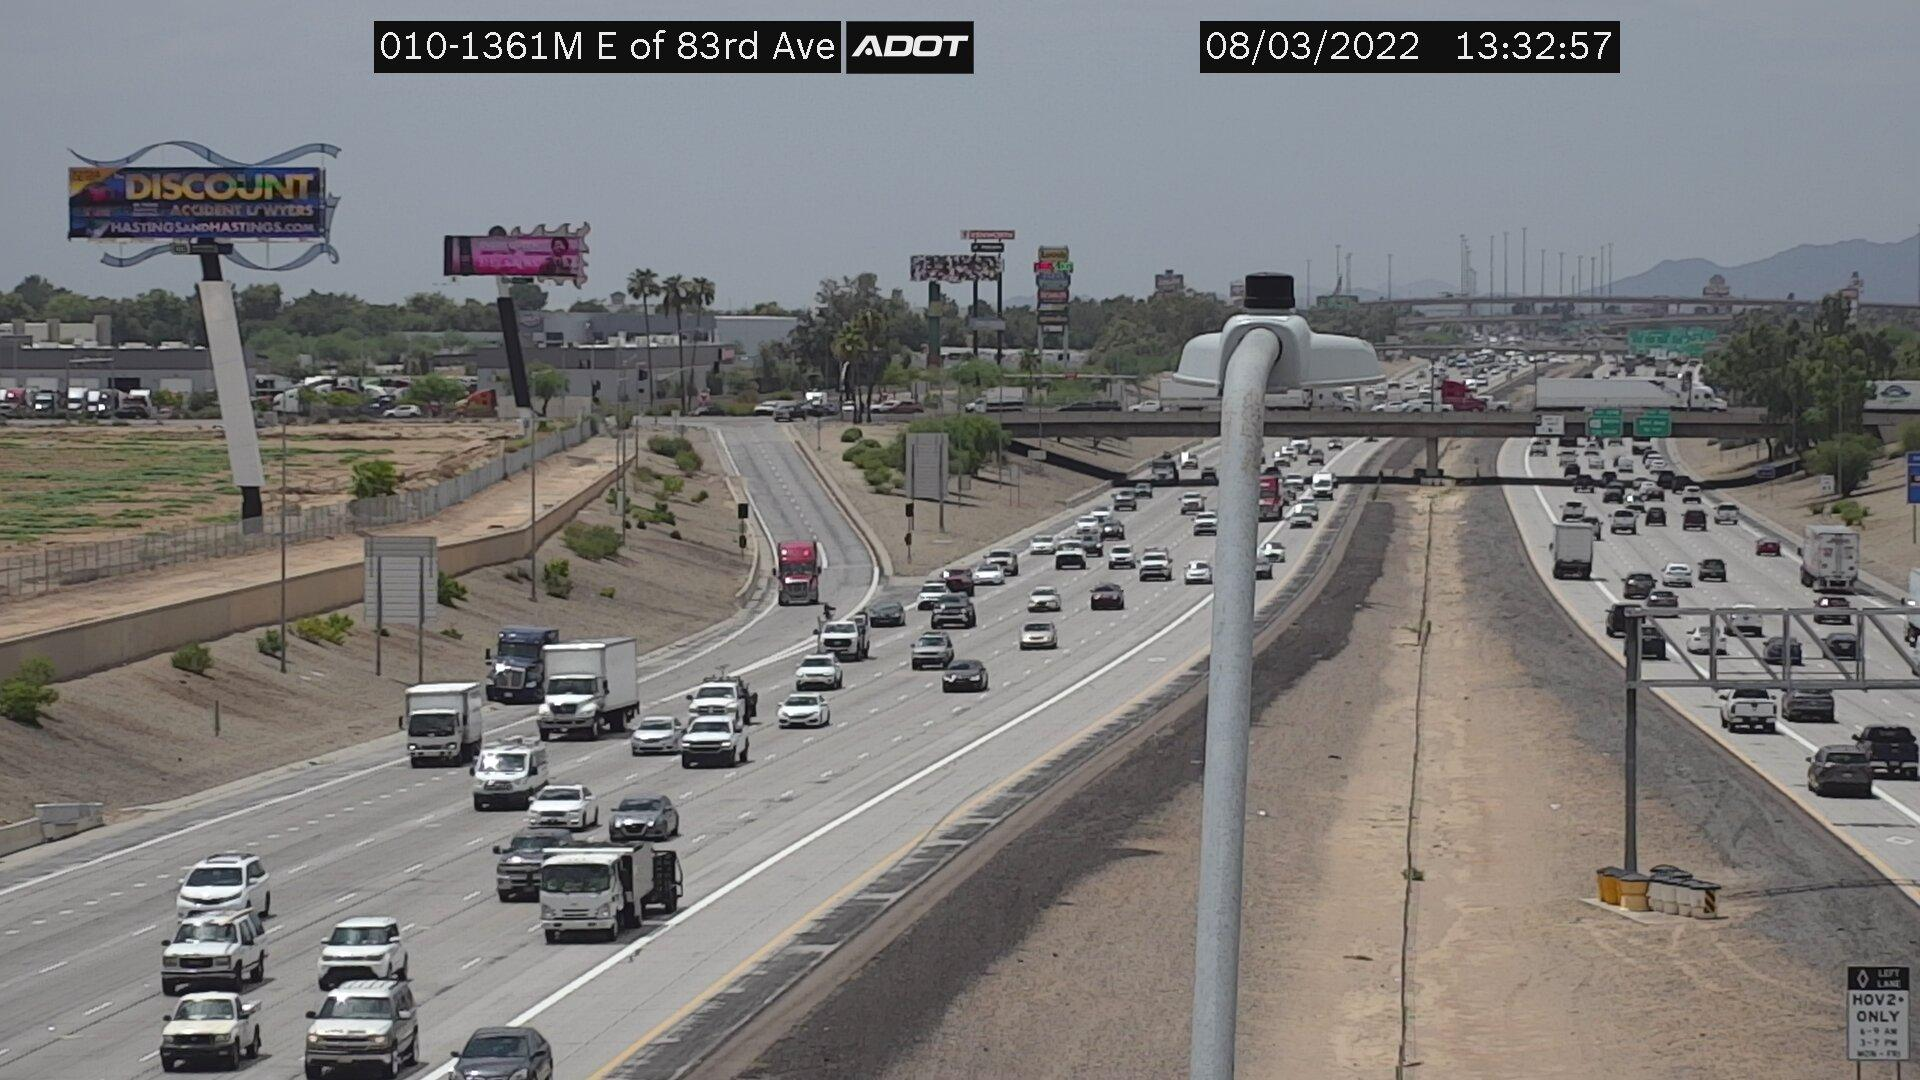 Webcam J and M Trailer Park: I-10W and 83rd Ave